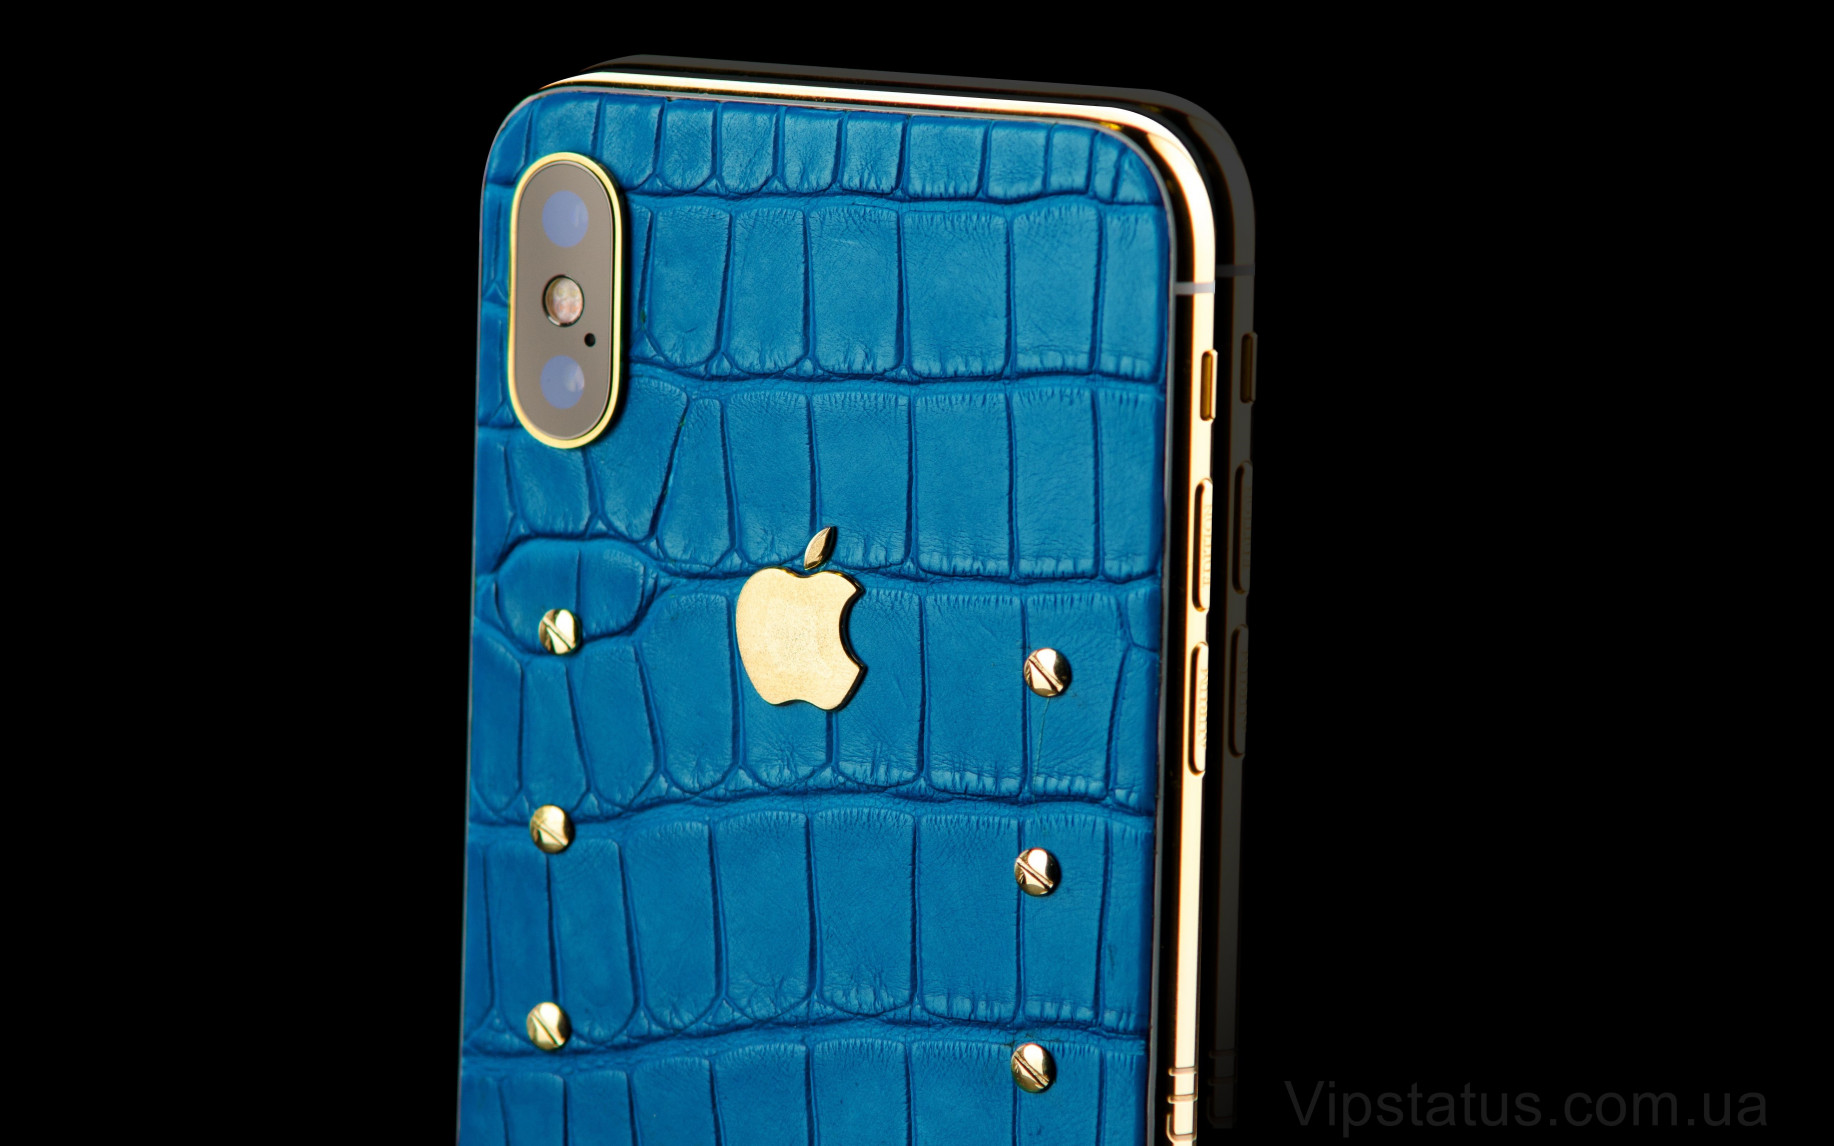 Elite Blue Lord IPHONE 11 PRO 512 GB Blue Lord IPHONE 11 PRO 512 GB image 3